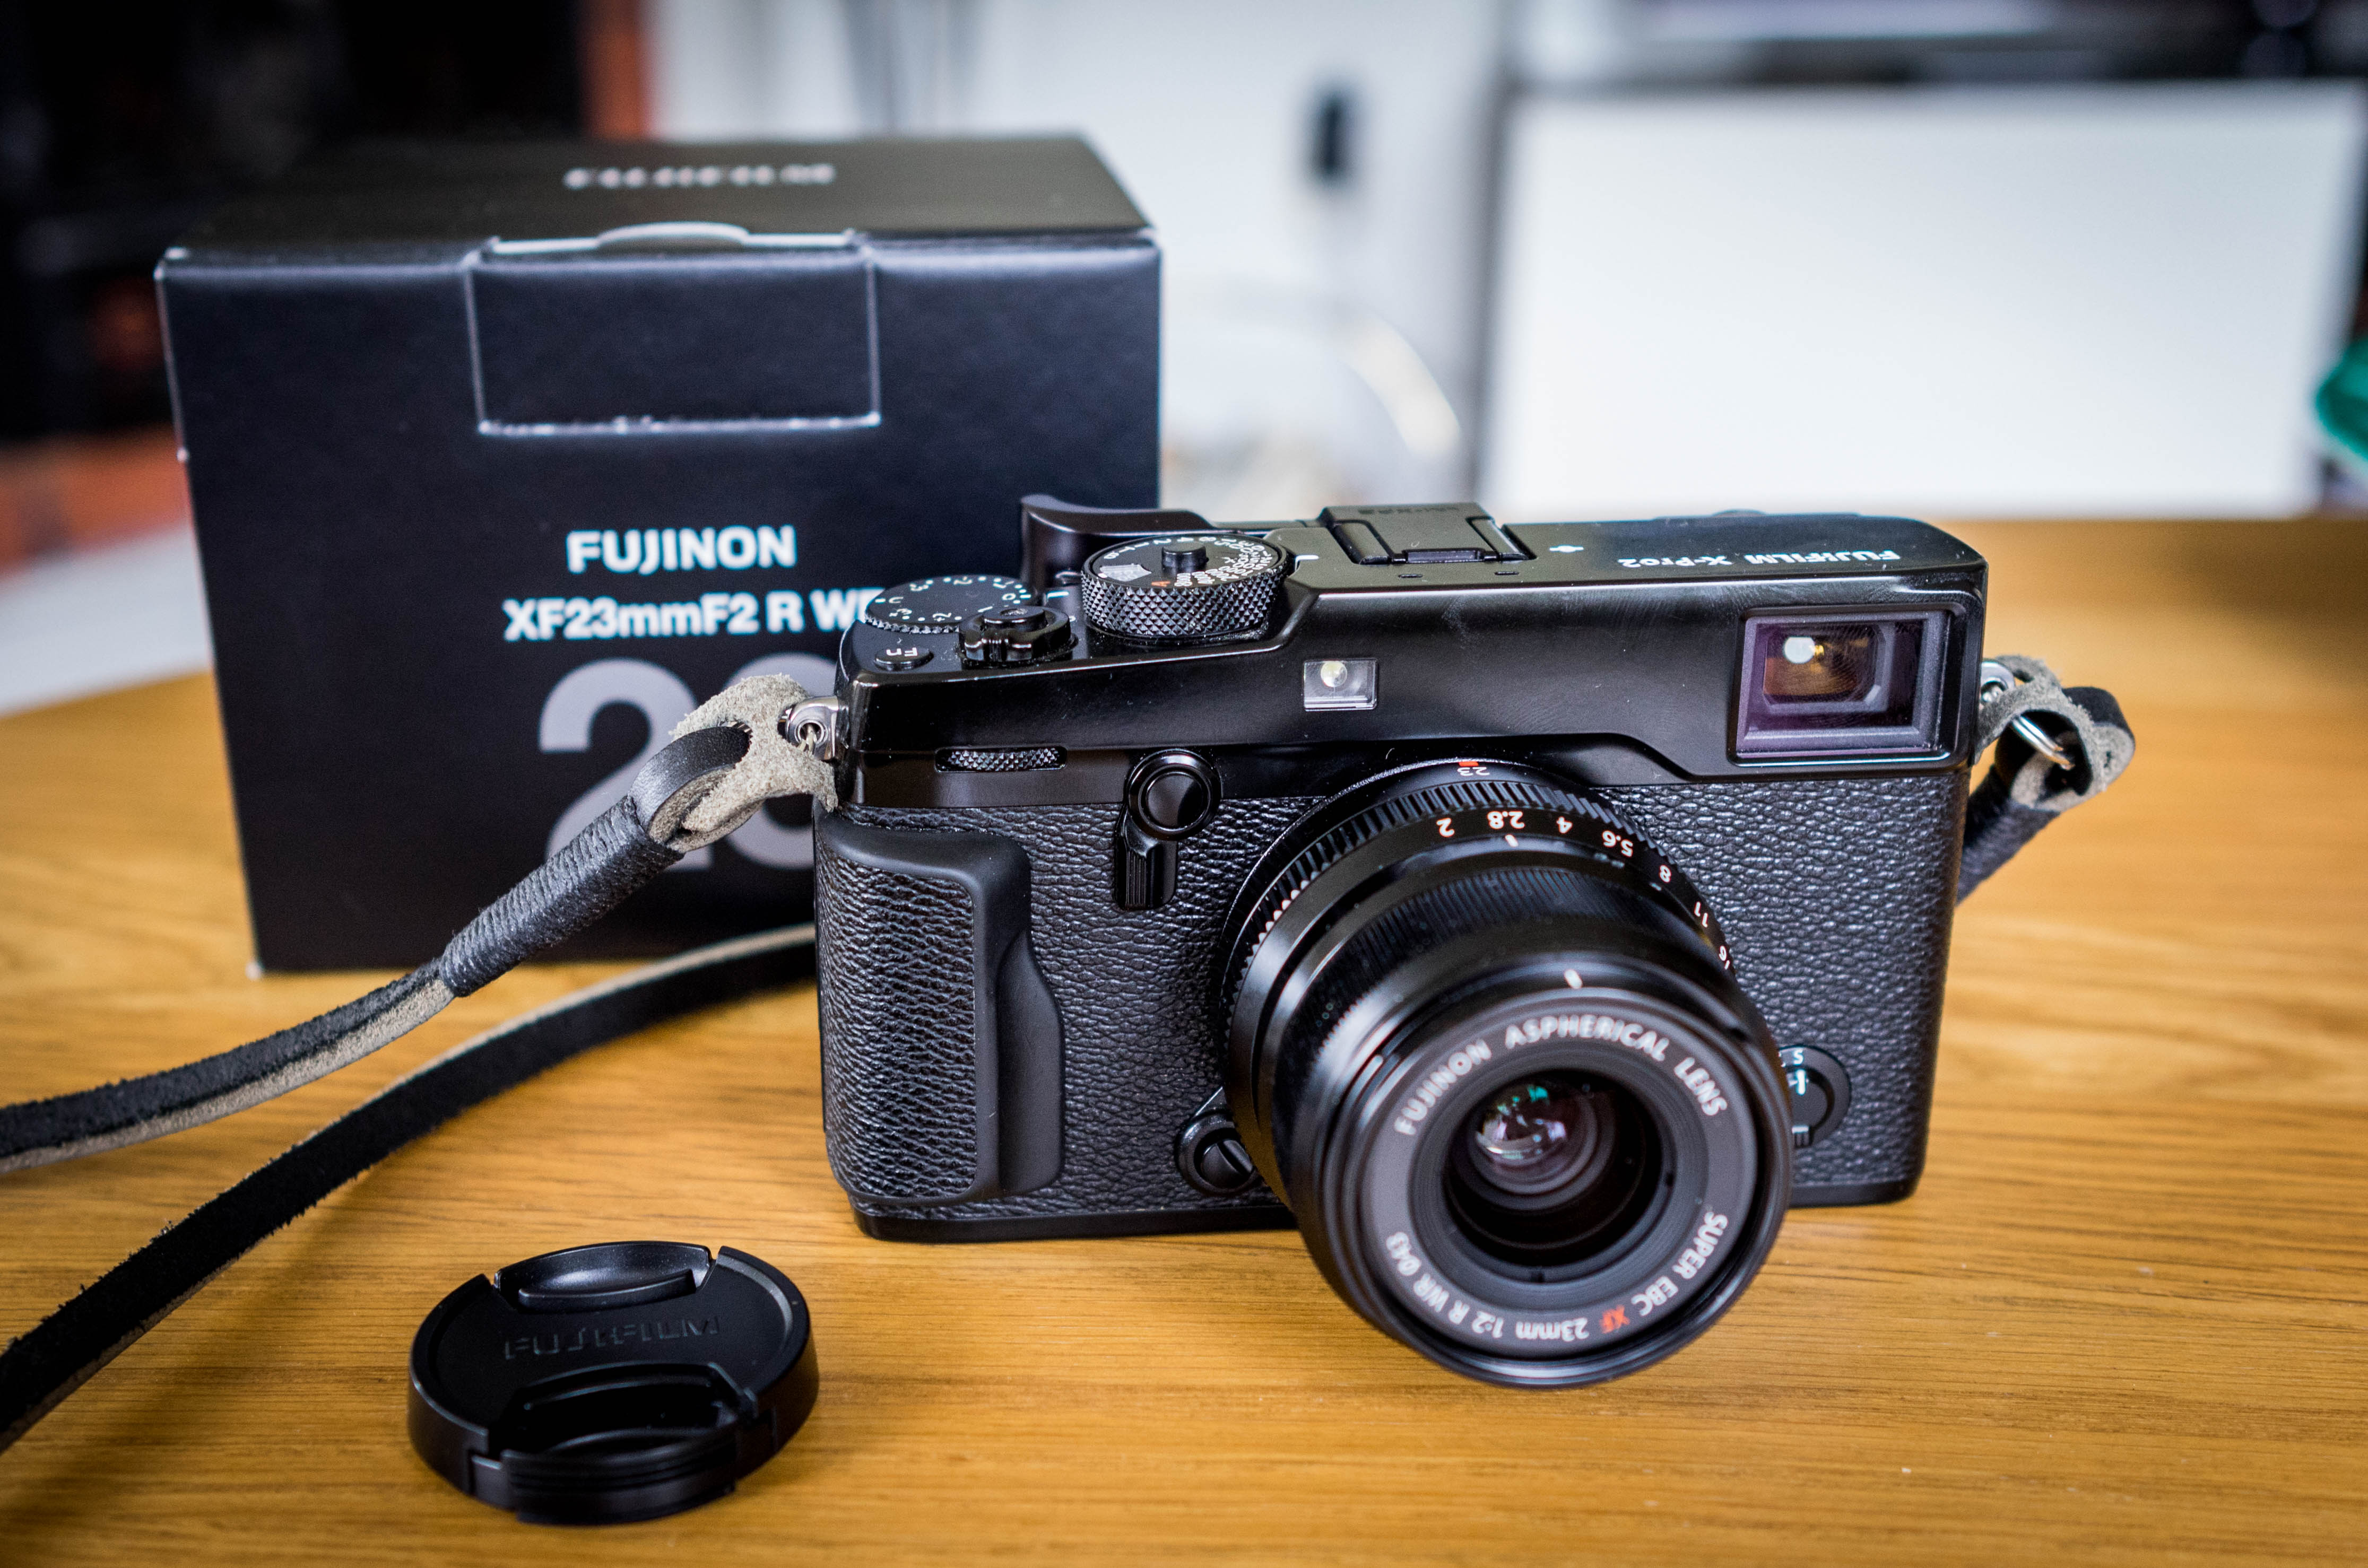 Fs Fujifilm X Pro2 23mm F2 Wr Accessories For Sale And Wanted Xf View Original Size